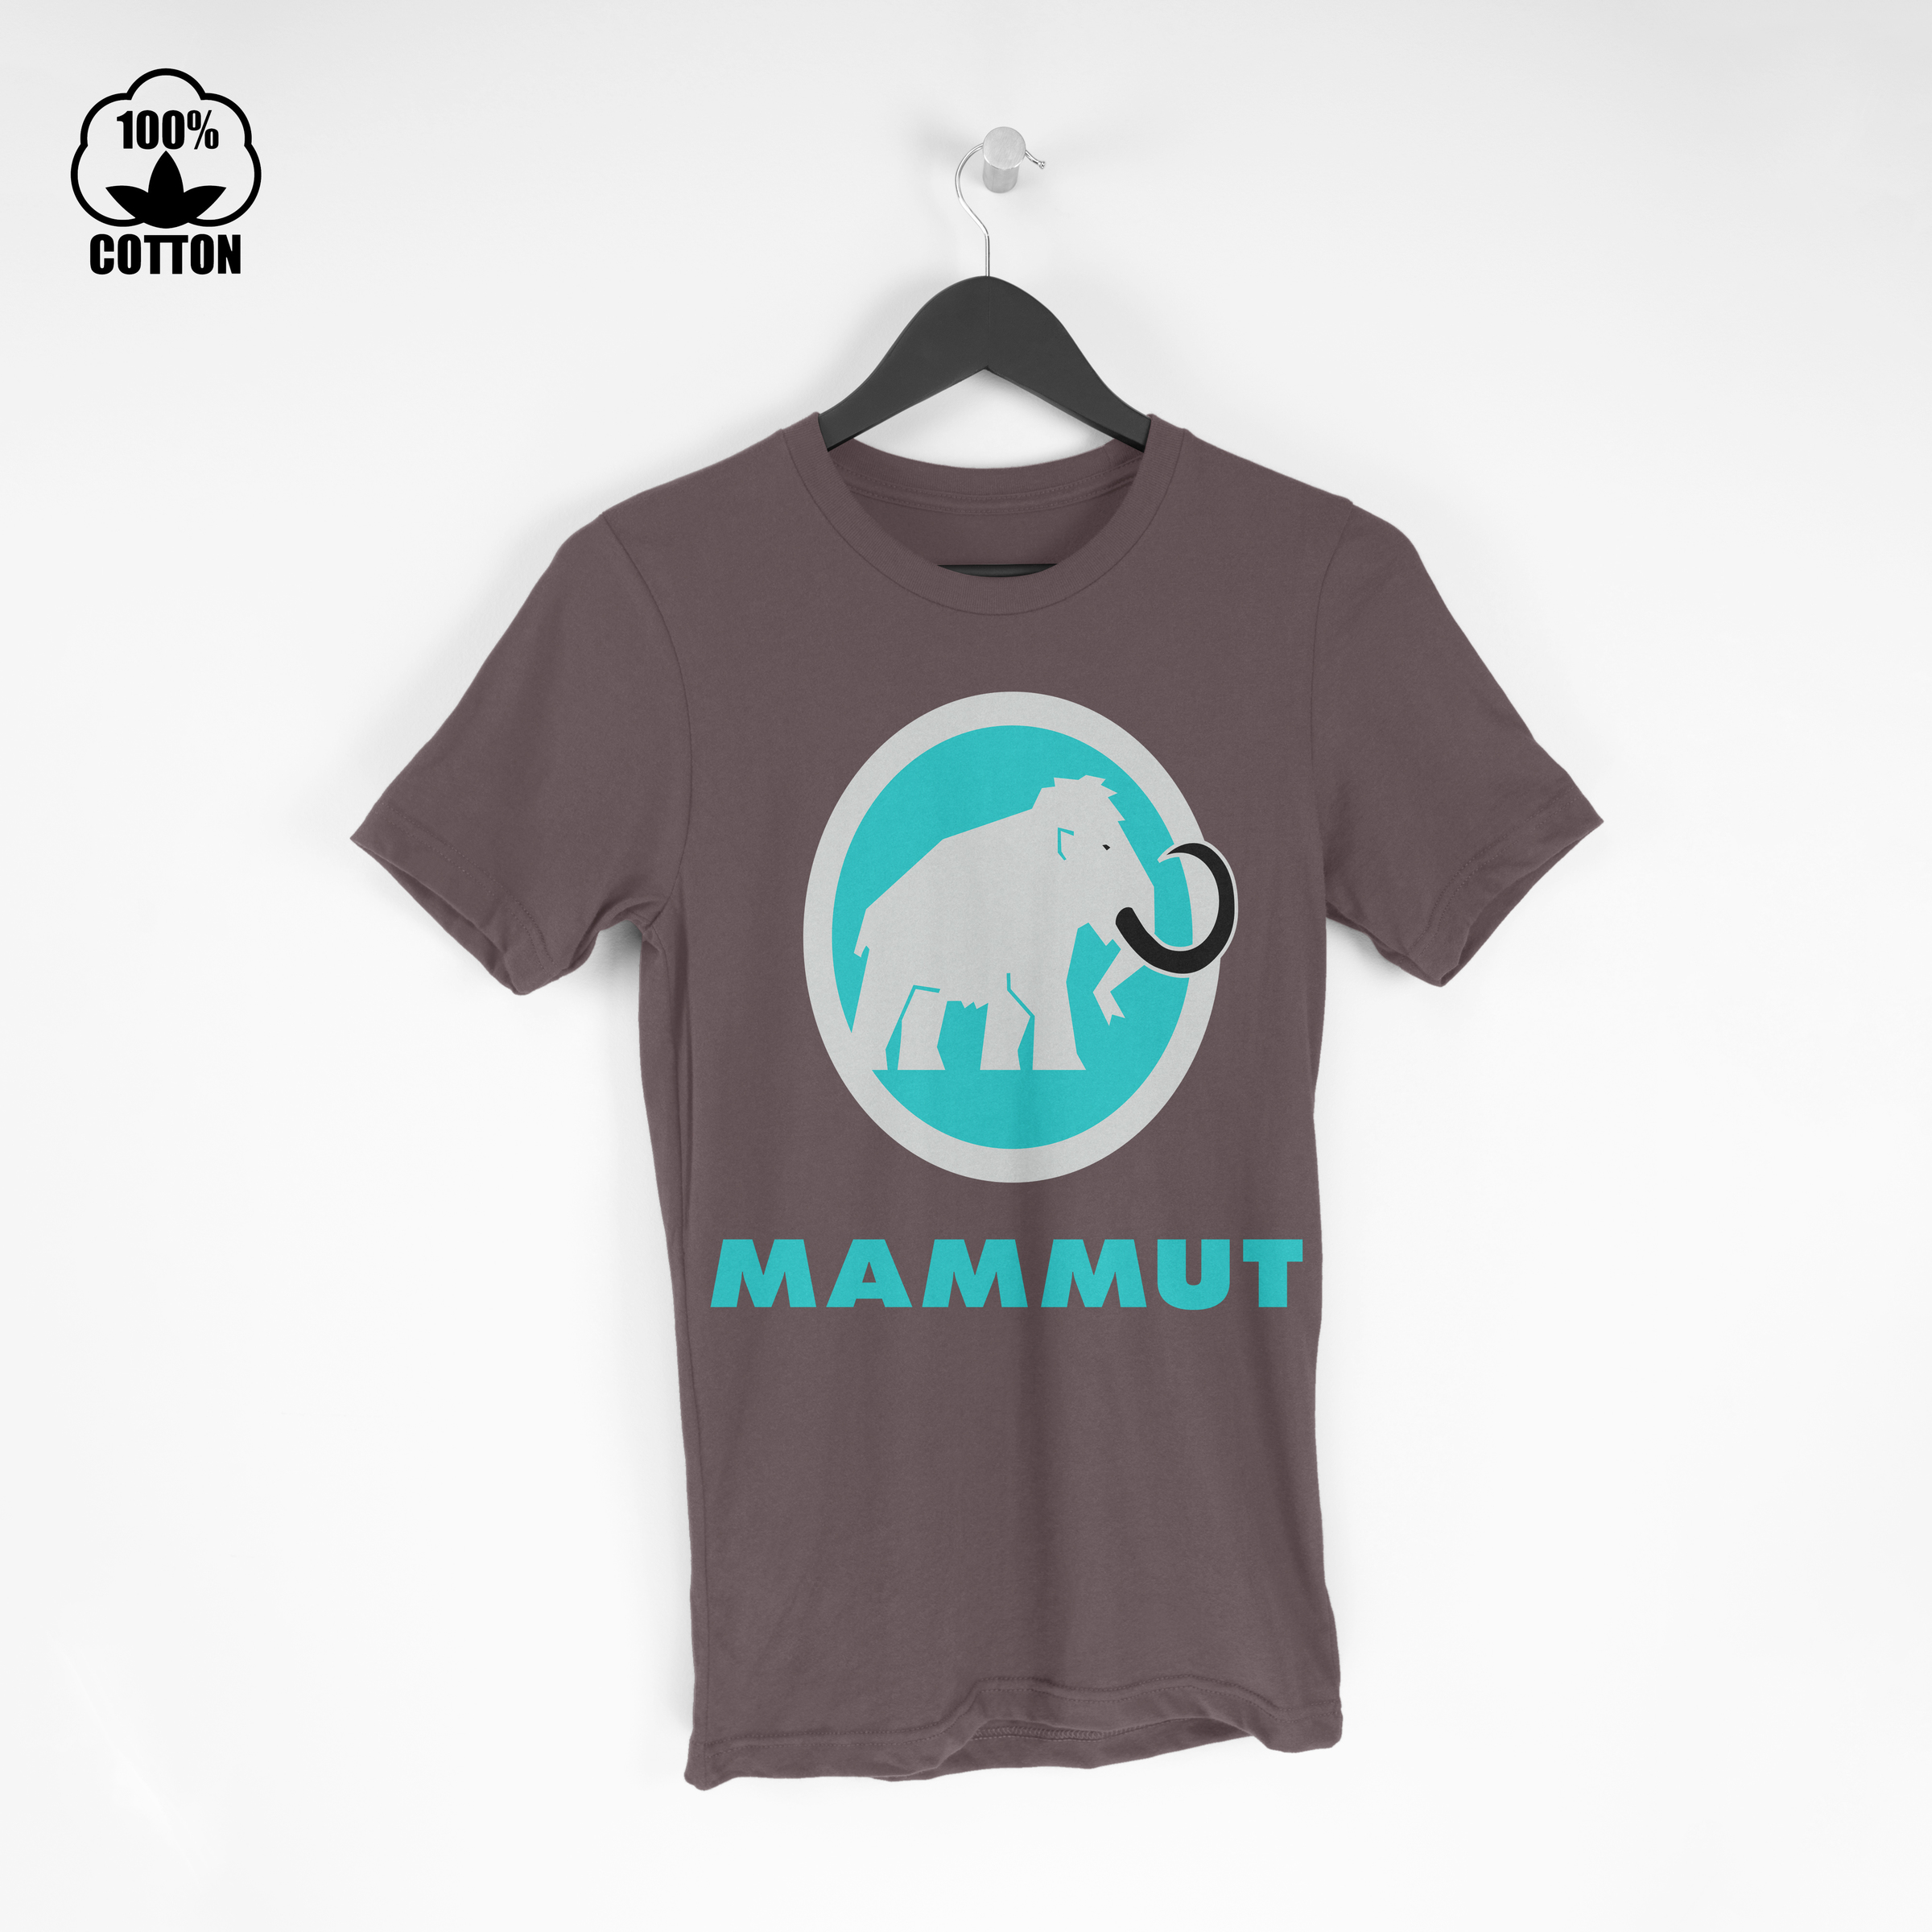 Mammut Logo Tee Size S-XXL USA SaddleBrown.jpg